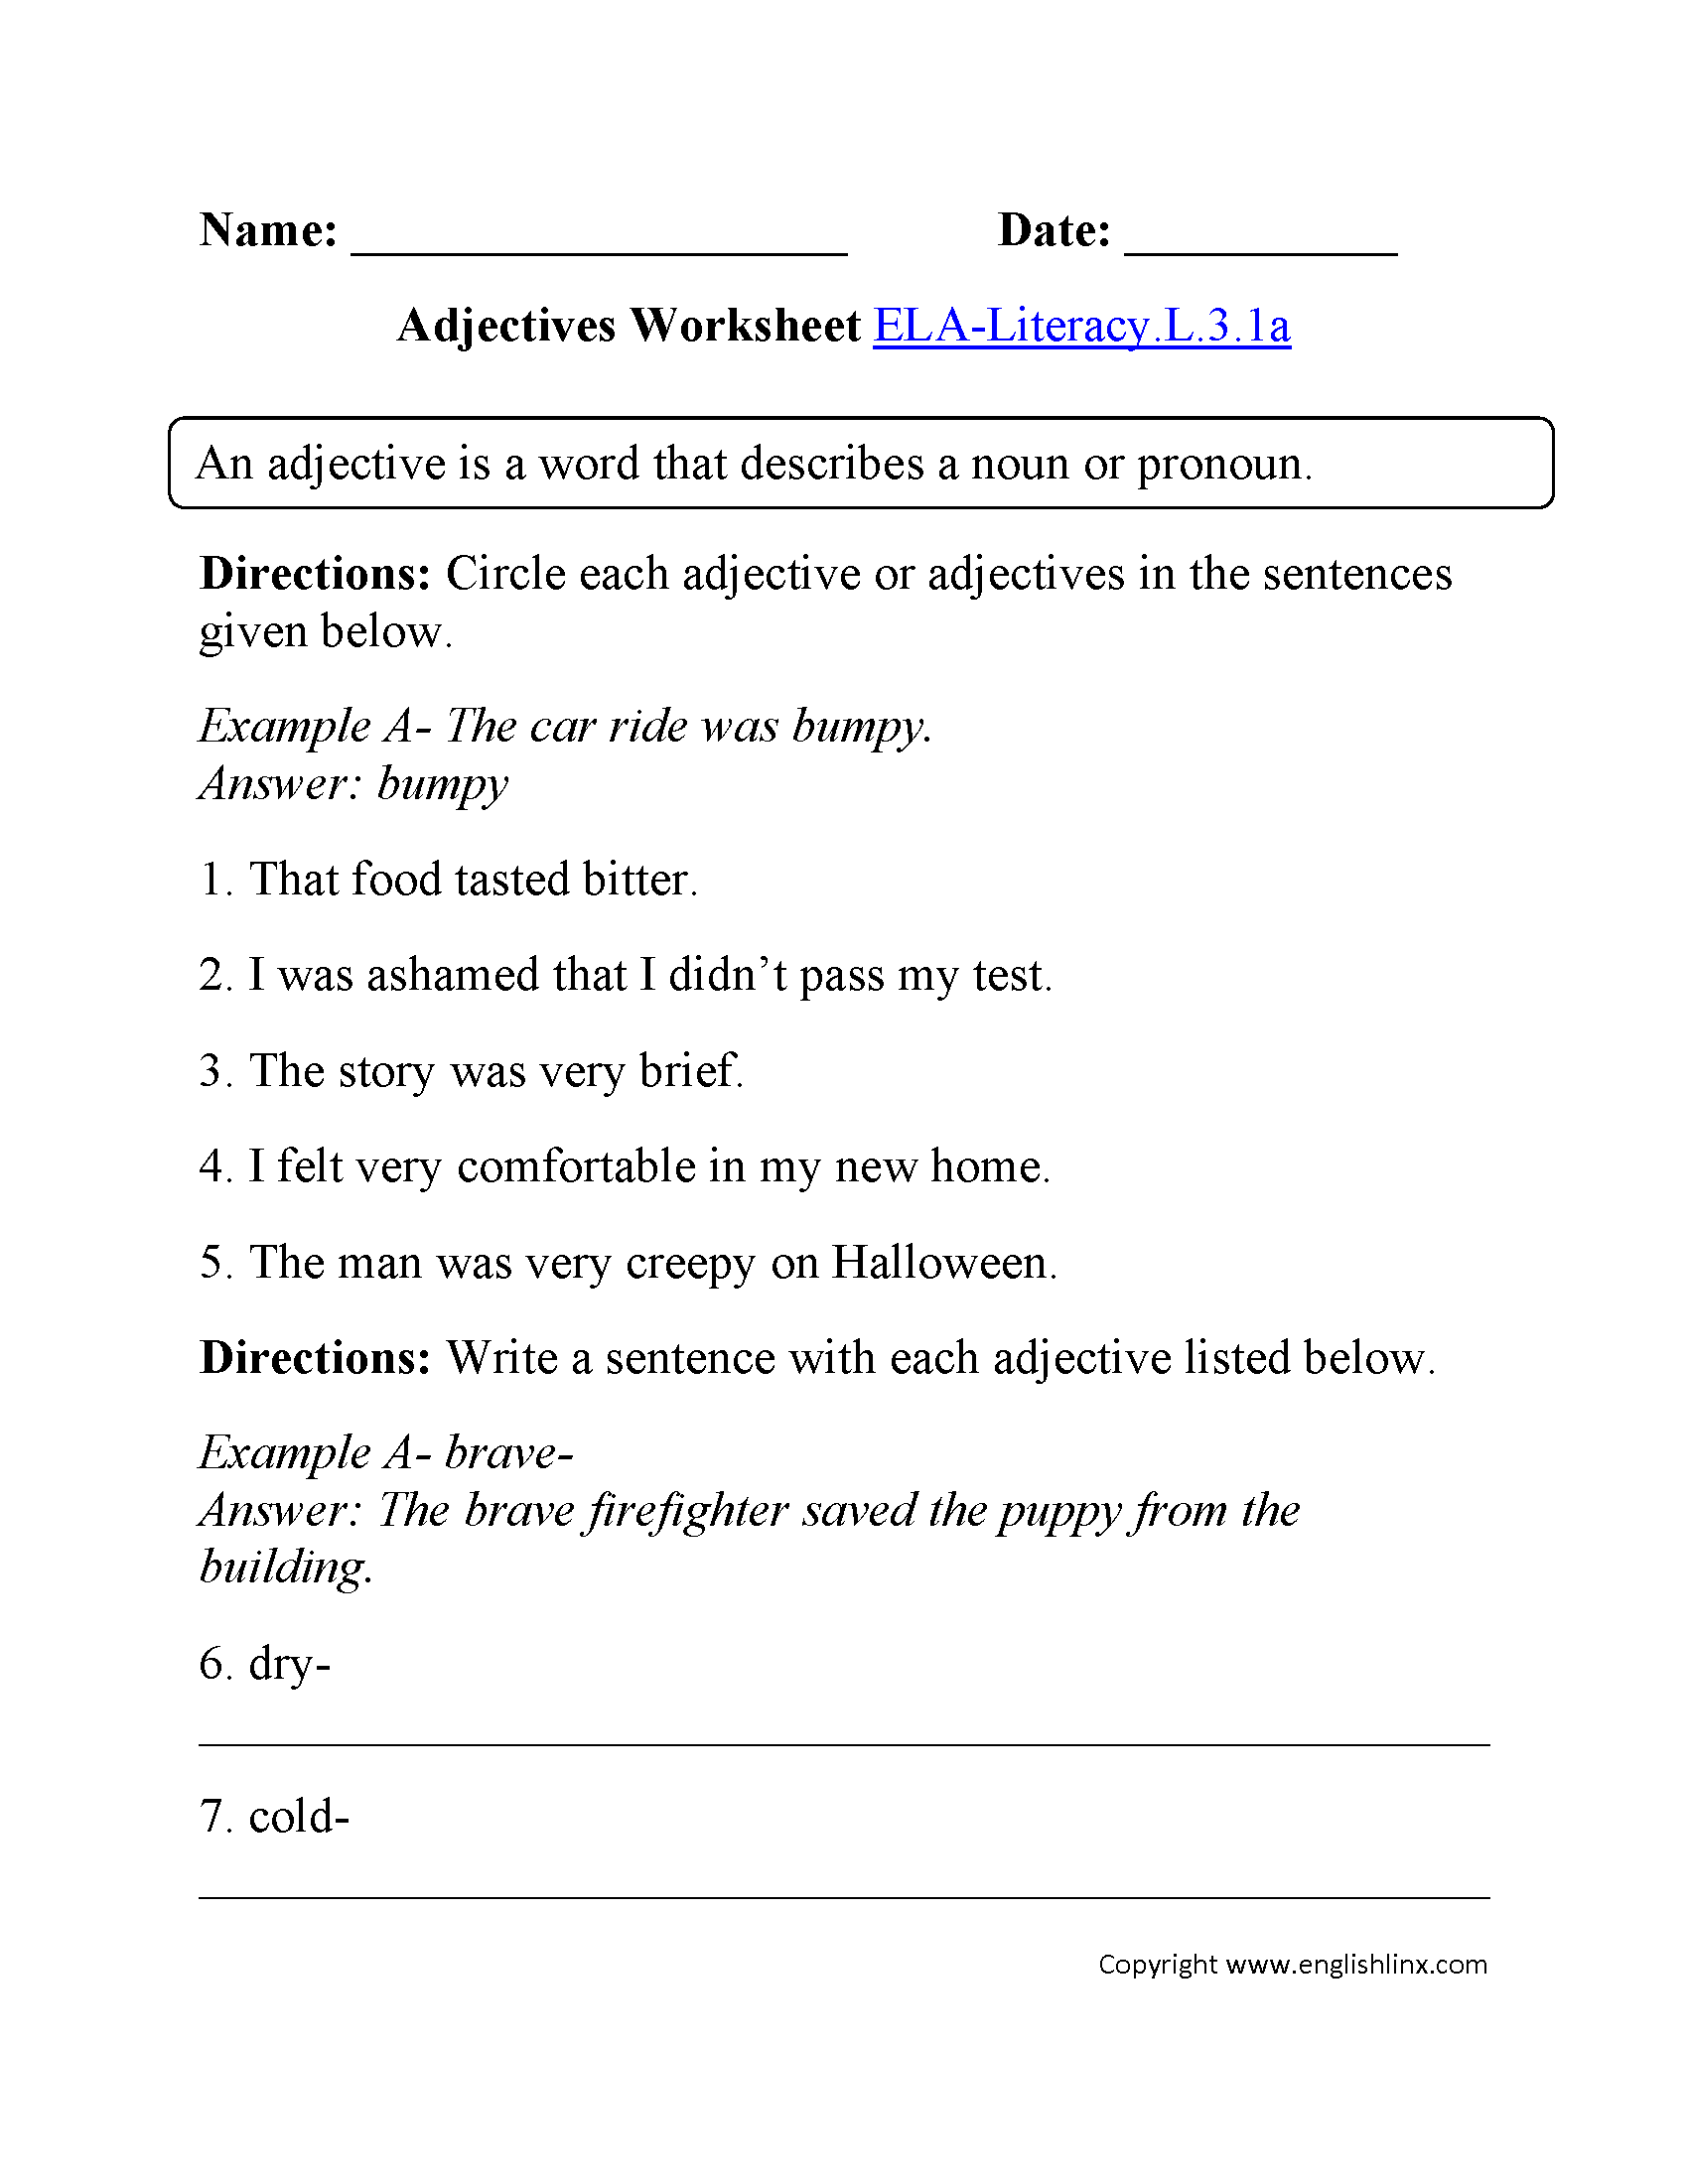 Adjectives Worksheet 2 Ela Literacy L 3 1a Language Worksheet